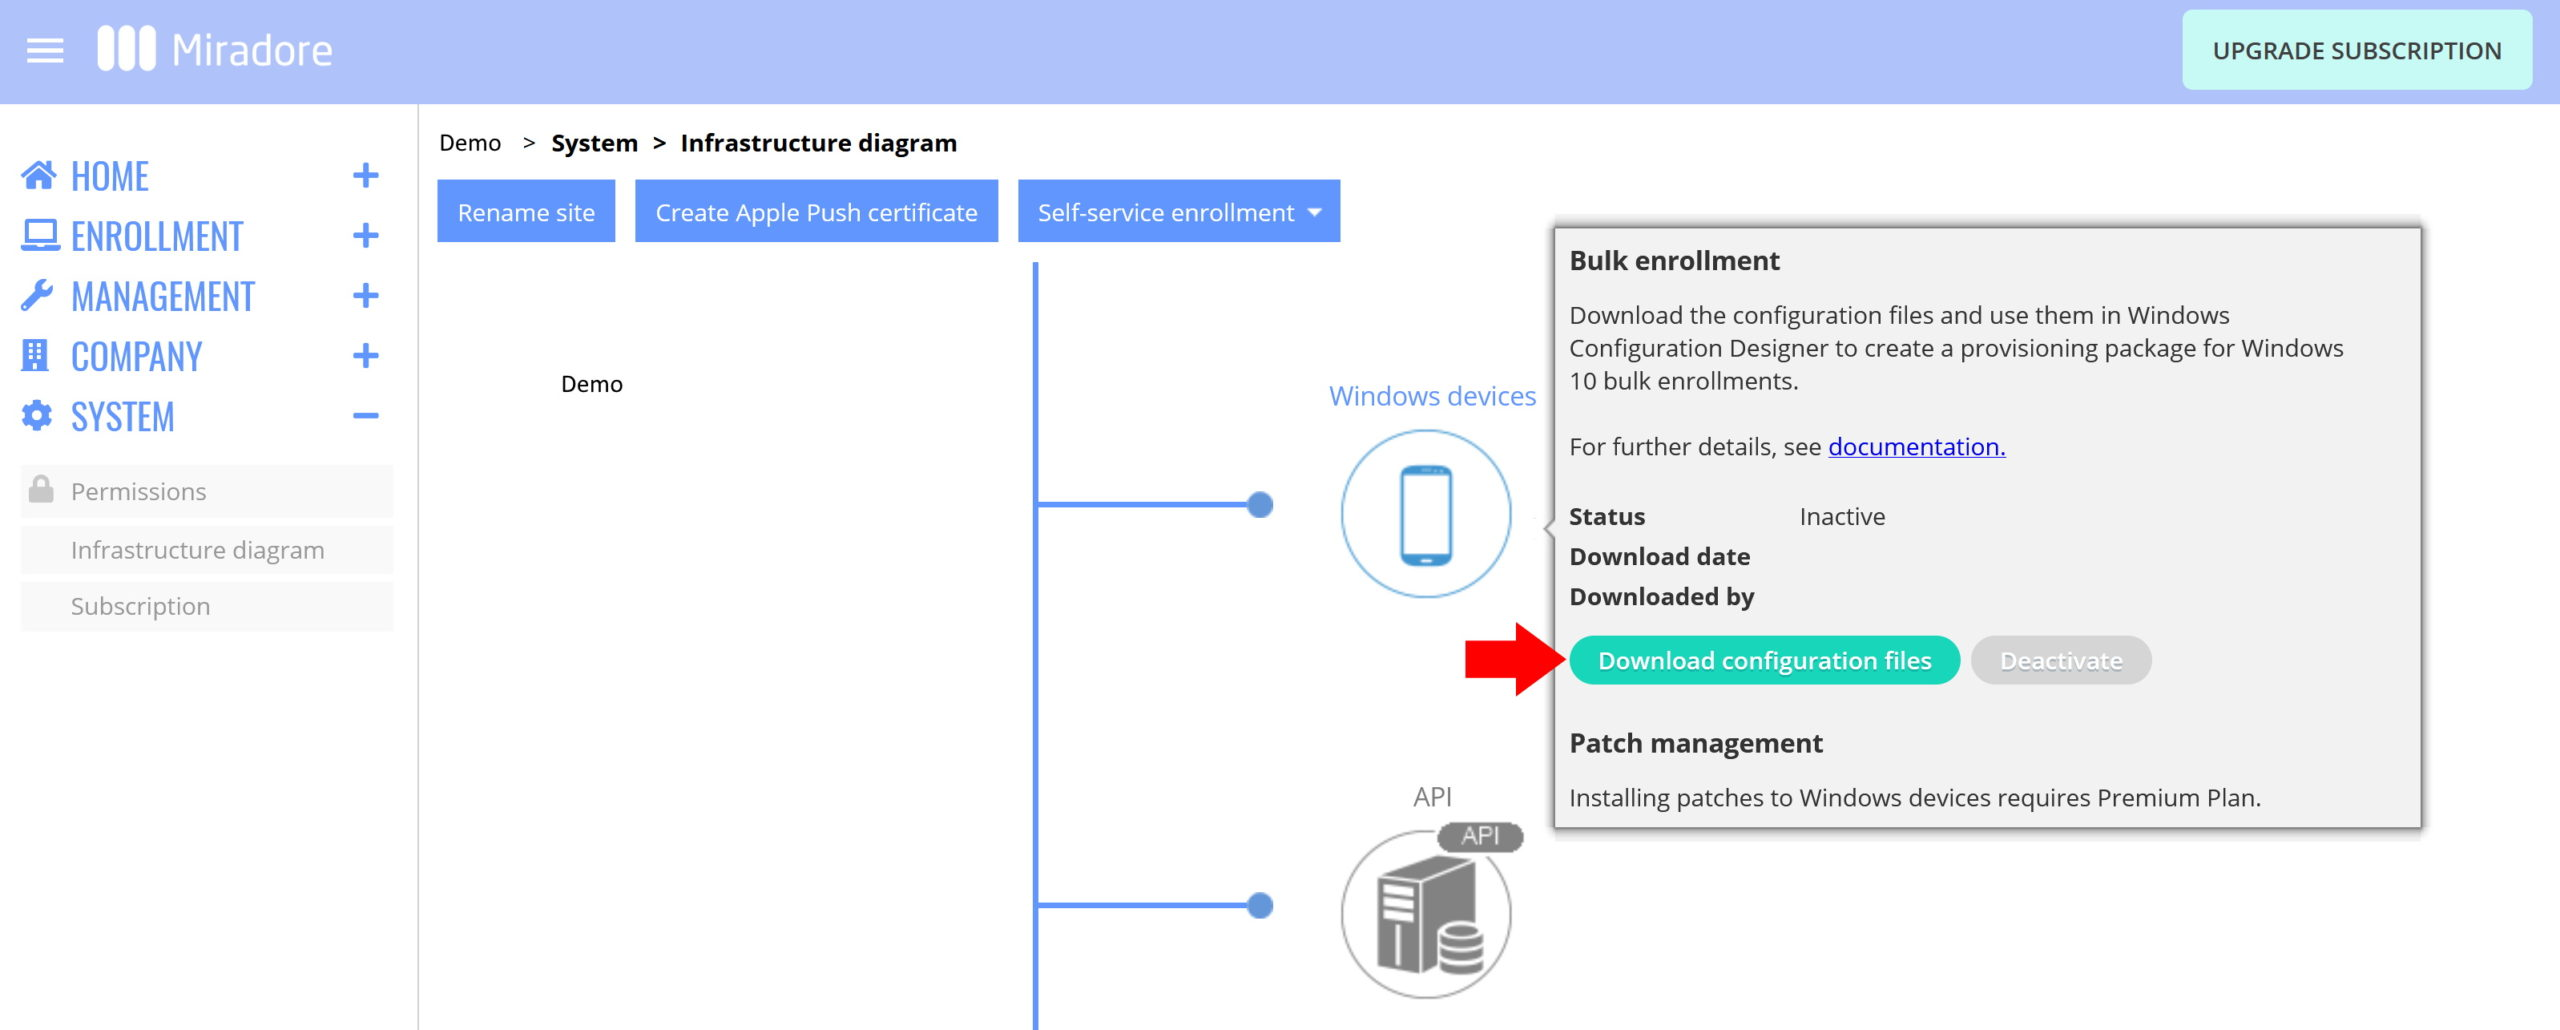 How to enroll large number of Windows 10 devices into an MDM